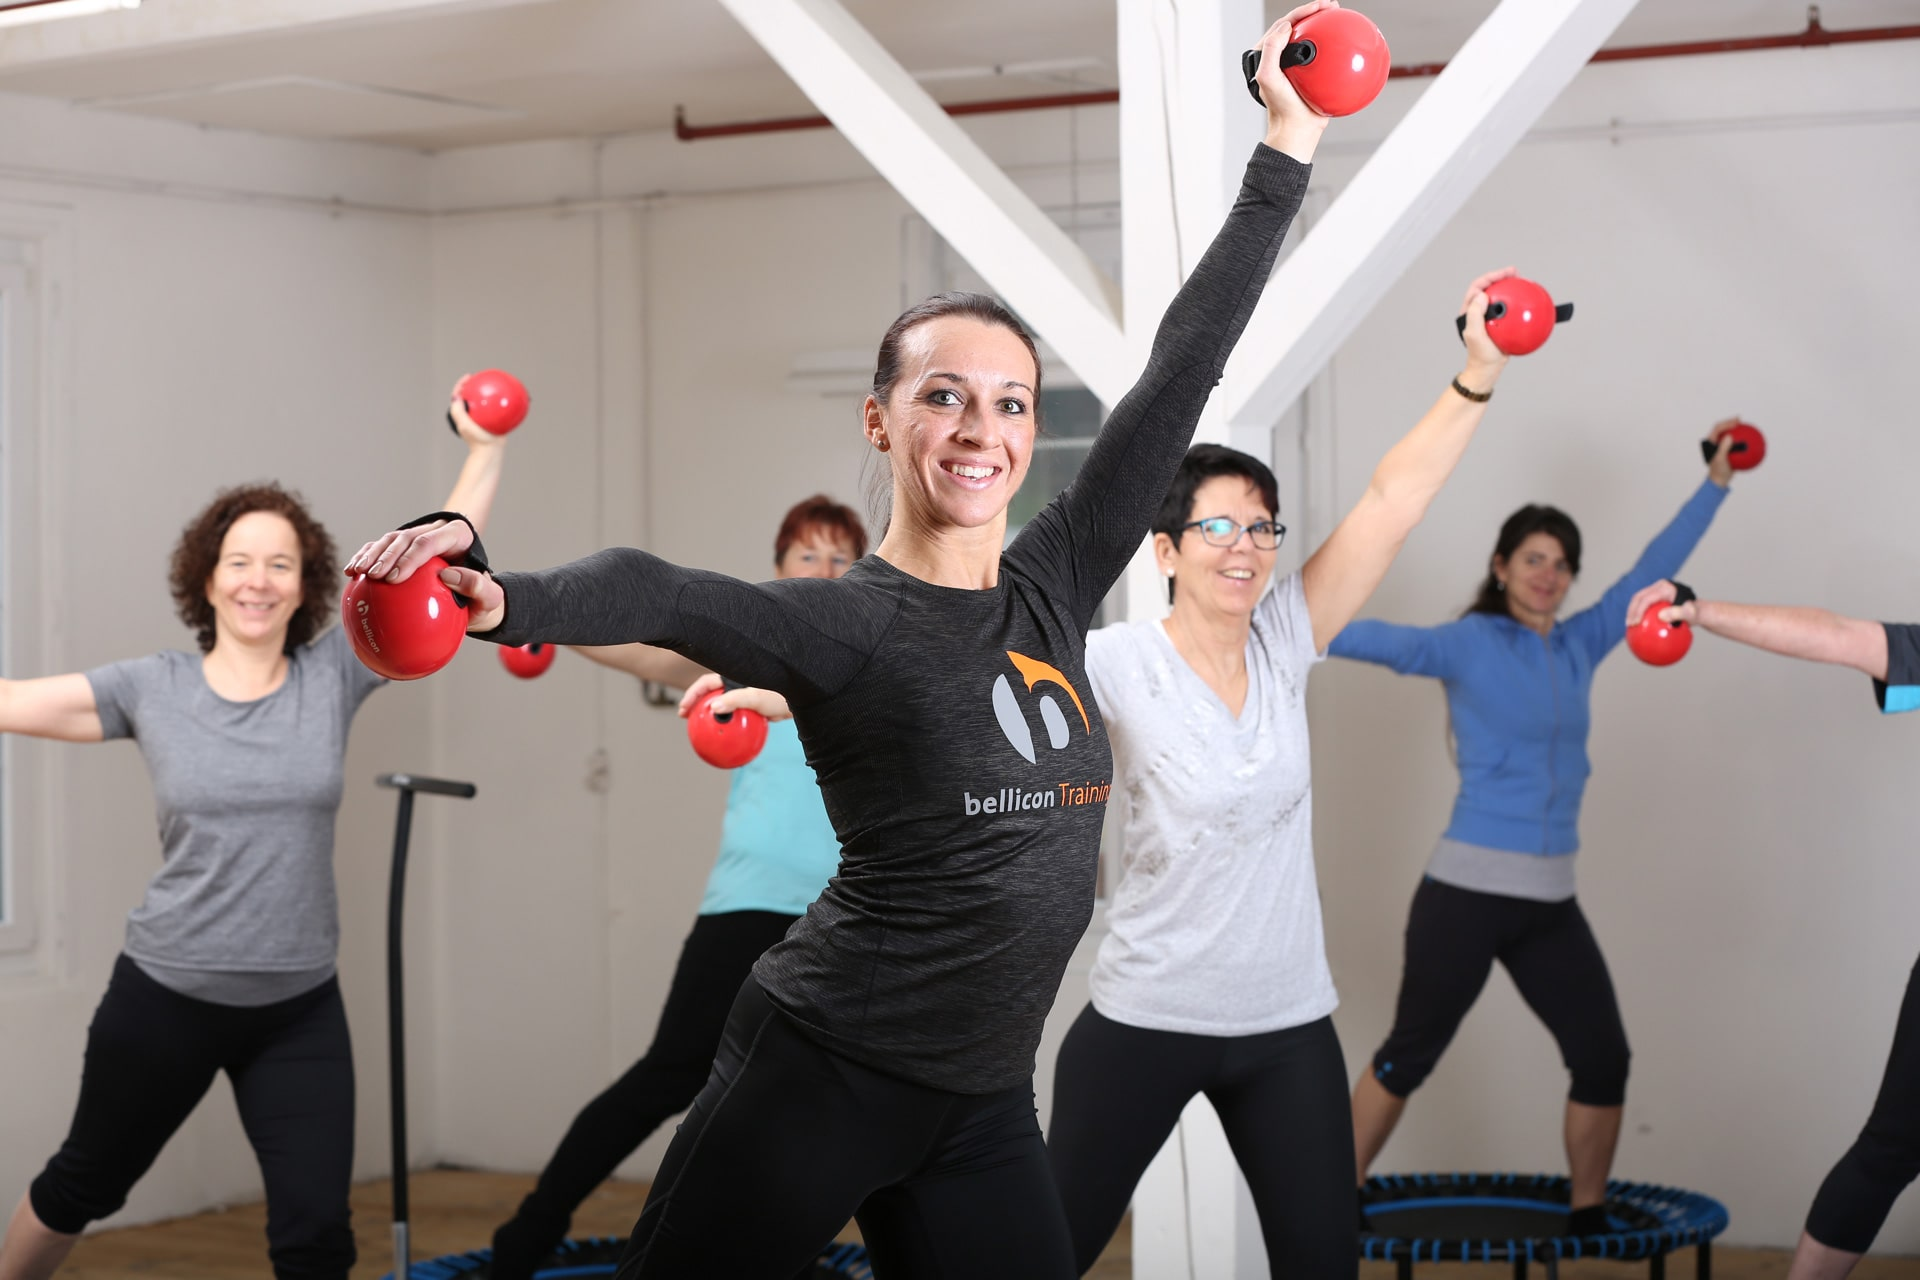 les bellicon Move bellicon Academy